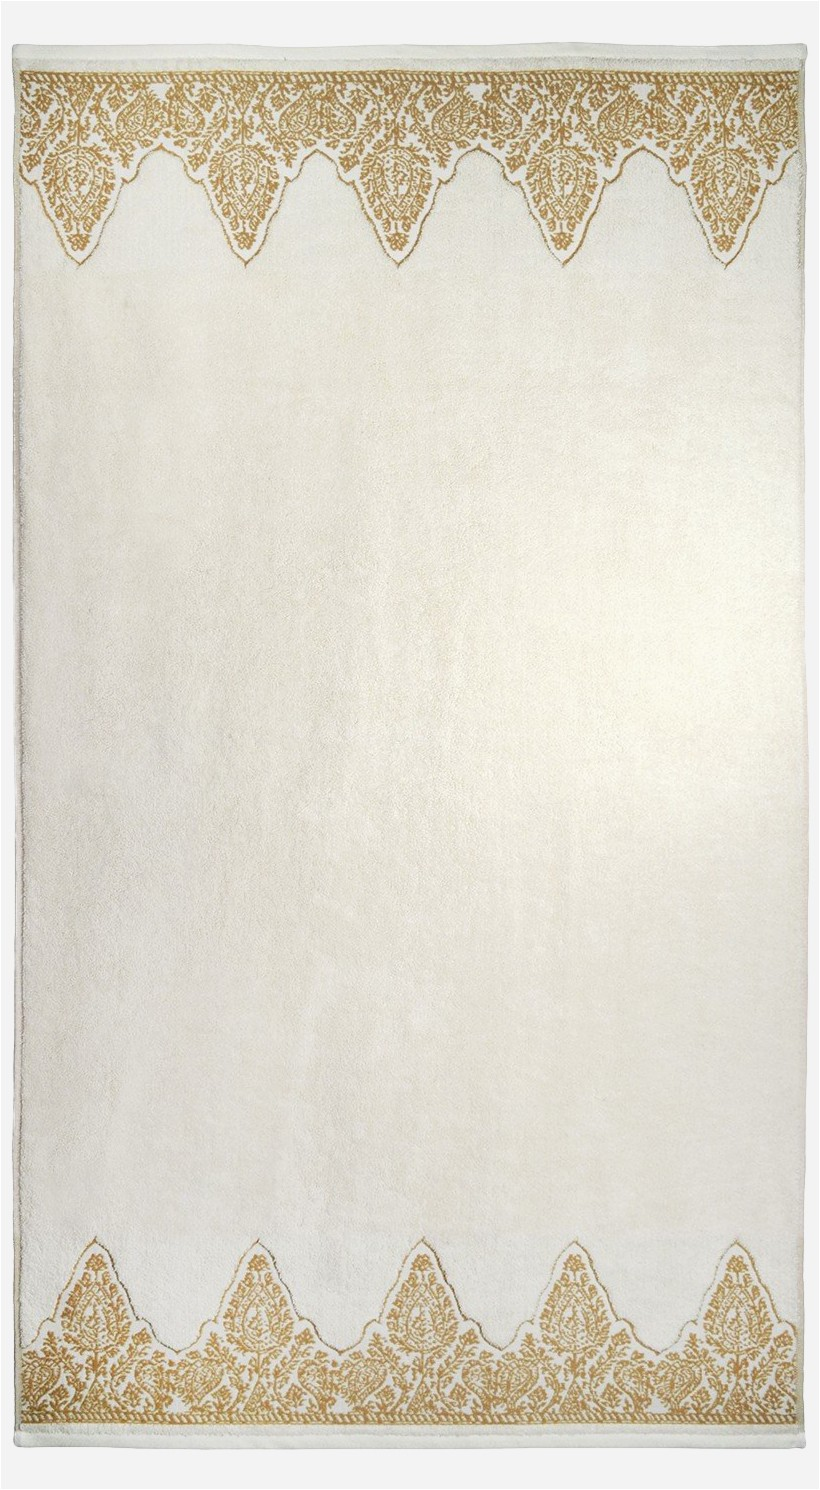 u2r5w7r5u2o0a9w7 nadir pearl white gold bath towel white and